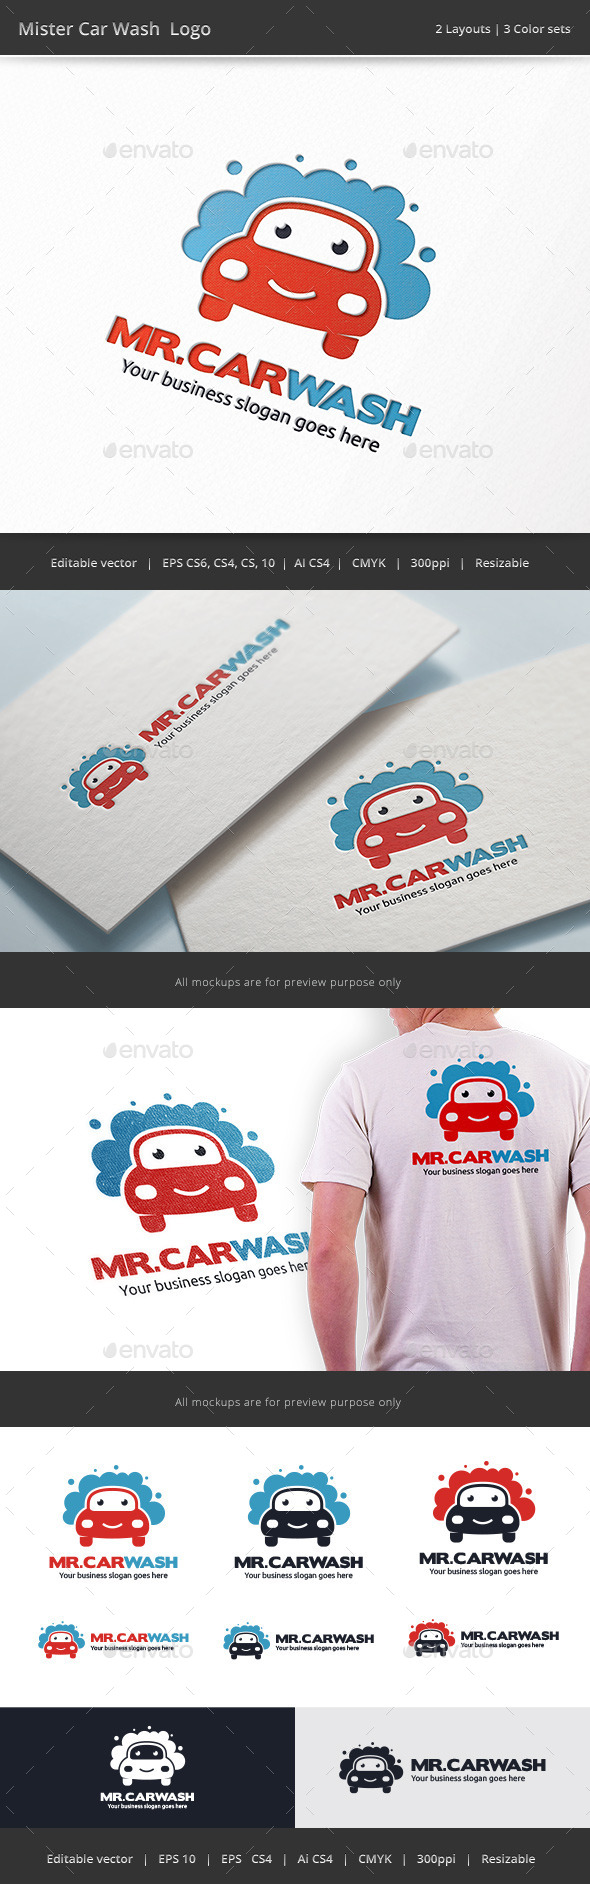 GraphicRiver Mister Car Wash Logo 9433061